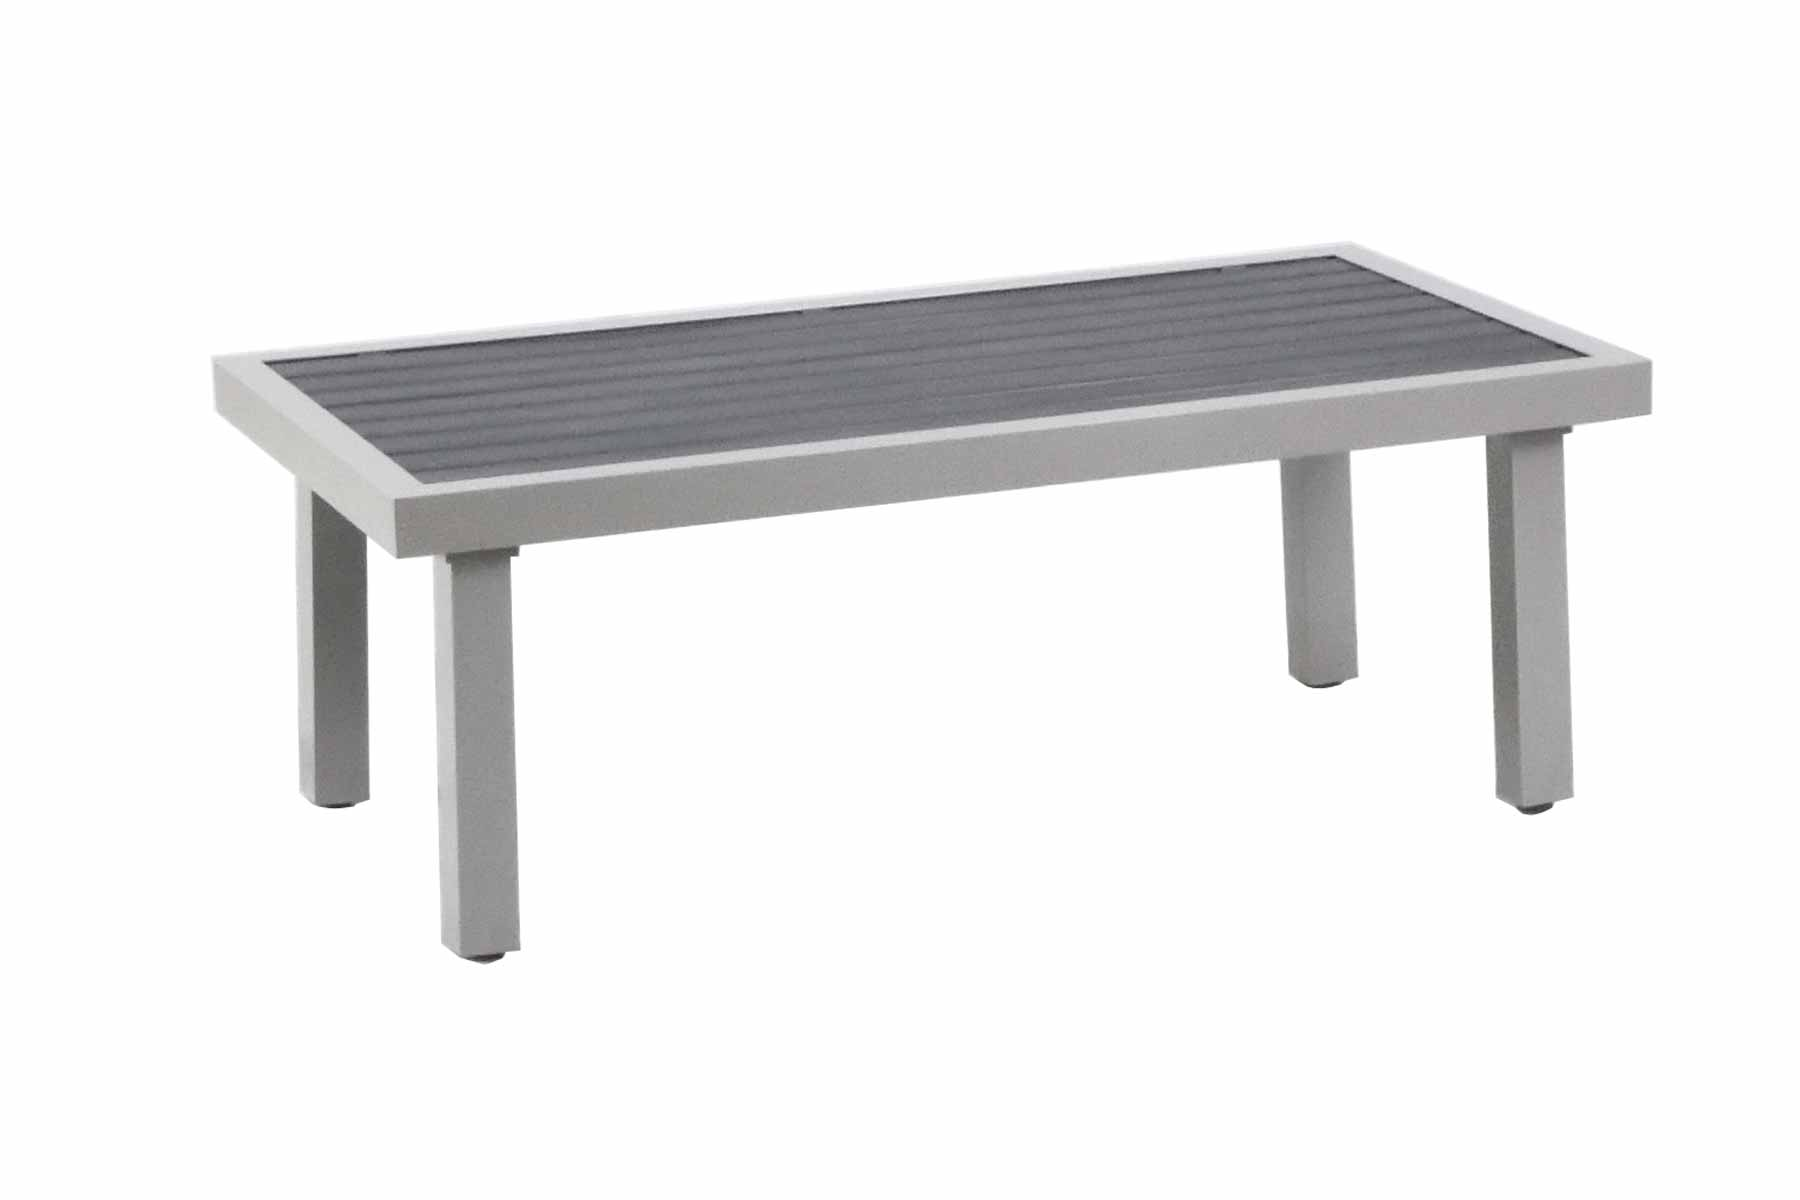 """MES-35 24"""" x 44"""" Rect Coffee Table   24"""" x 44"""" x 16"""""""